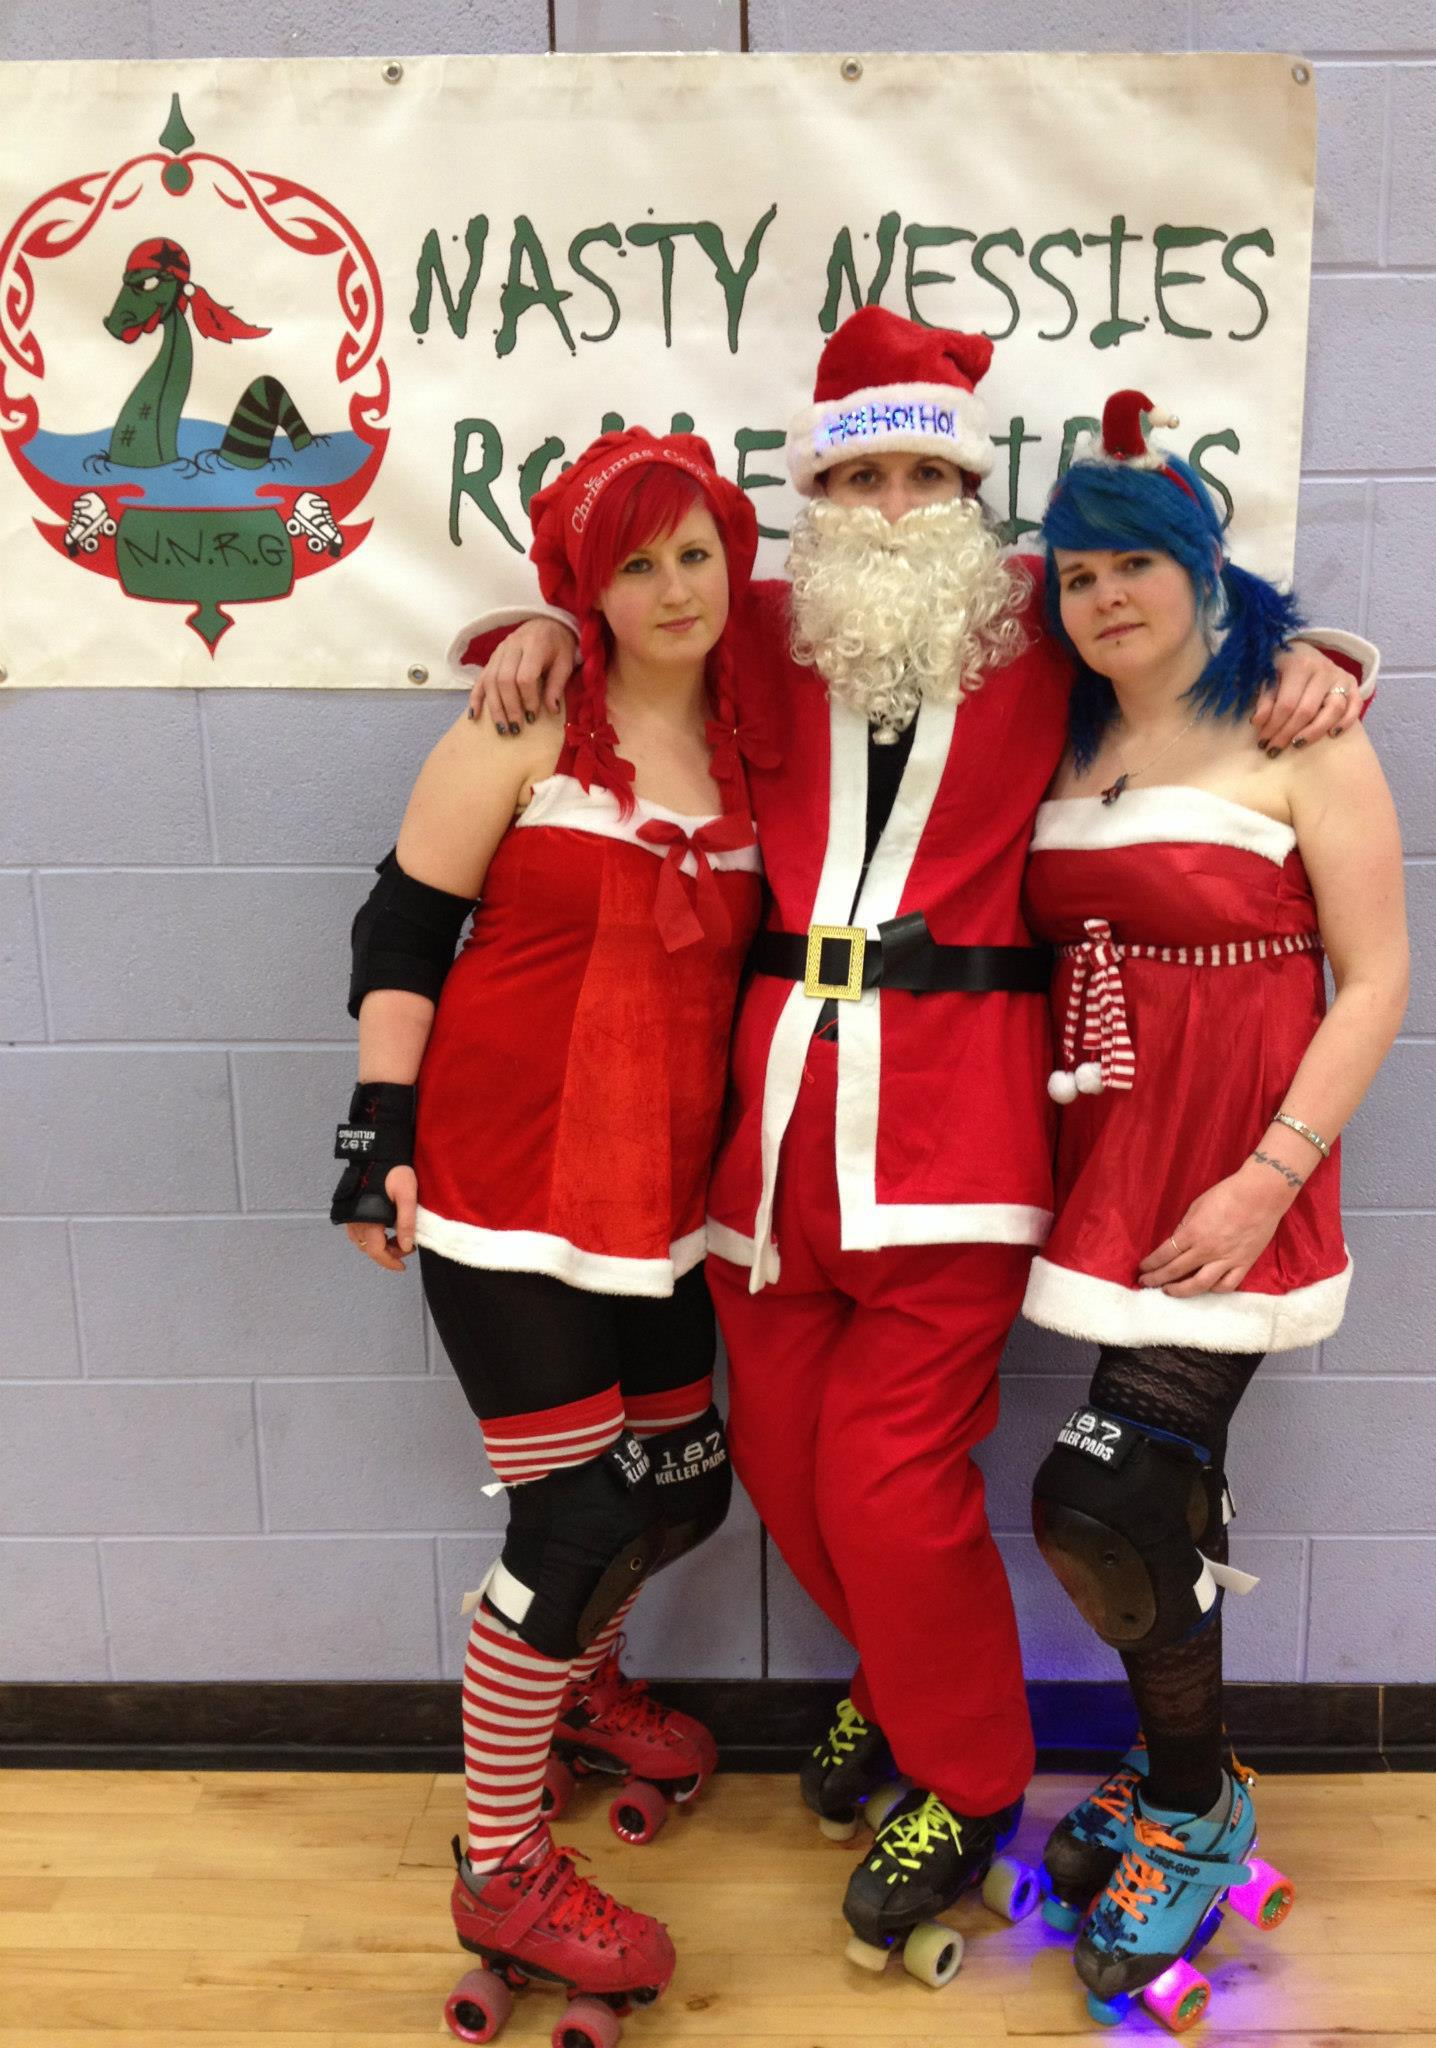 Nat-orious Red, Santa, and Irn Bruzer at the Nessies' Christmas skate.